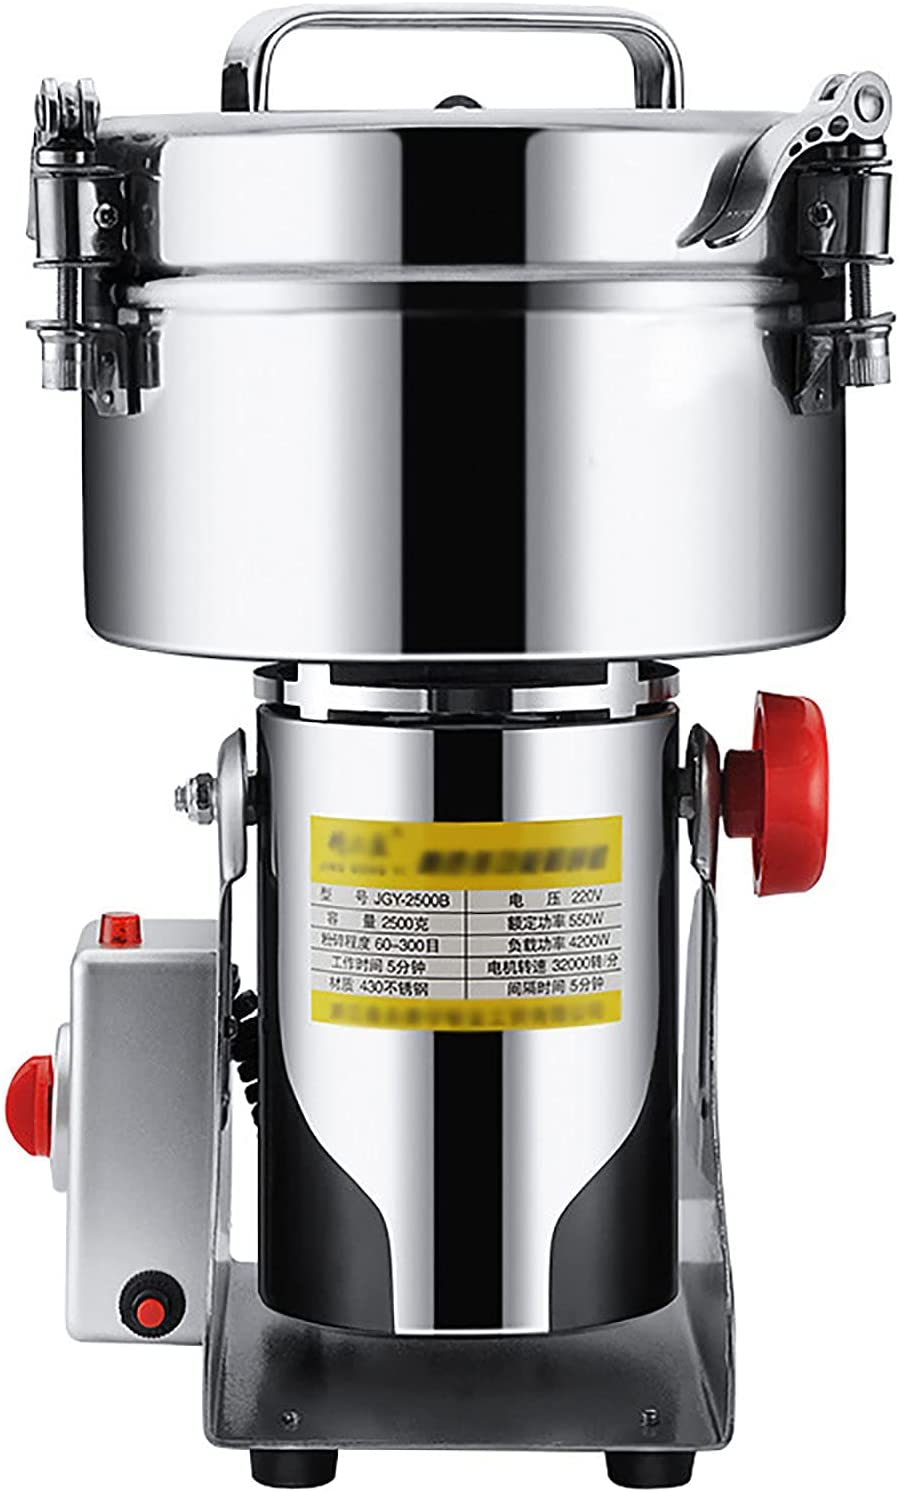 Electric Grain Mills Grinder Max 59% OFF Cereal Speed Herb Ranking TOP5 Stainless High St